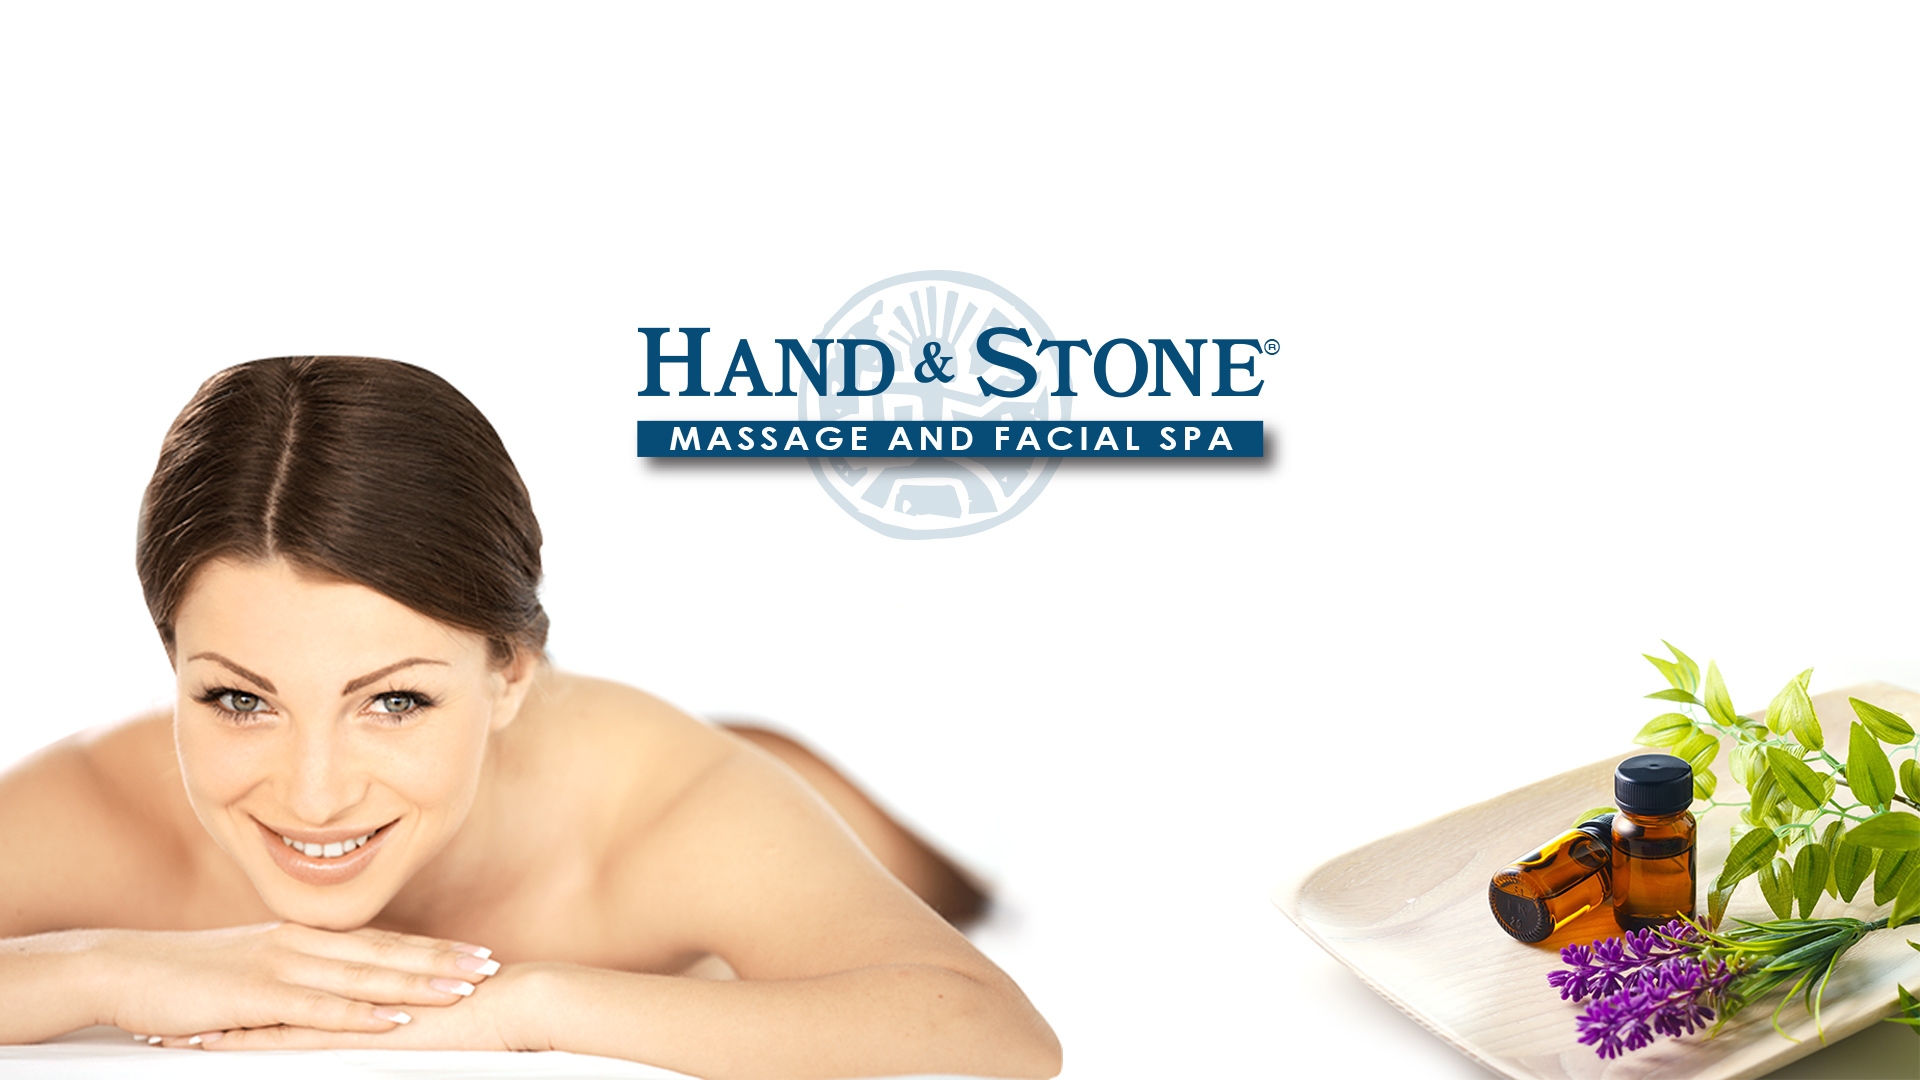 Hand and Stone Website Design Preview